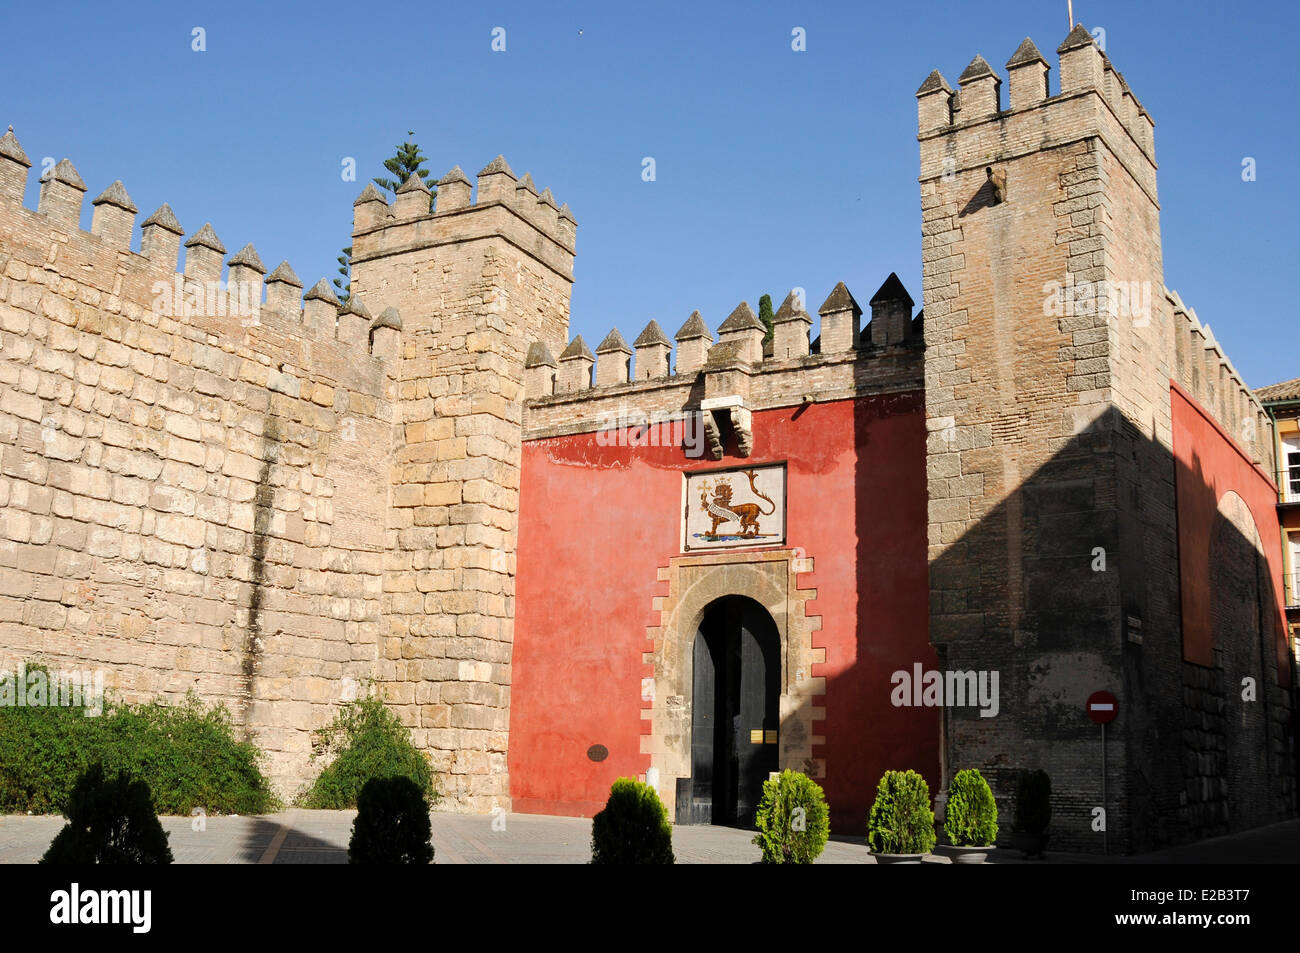 Spain, Andalucia, Alcazar, fortifications and current input - Stock Image